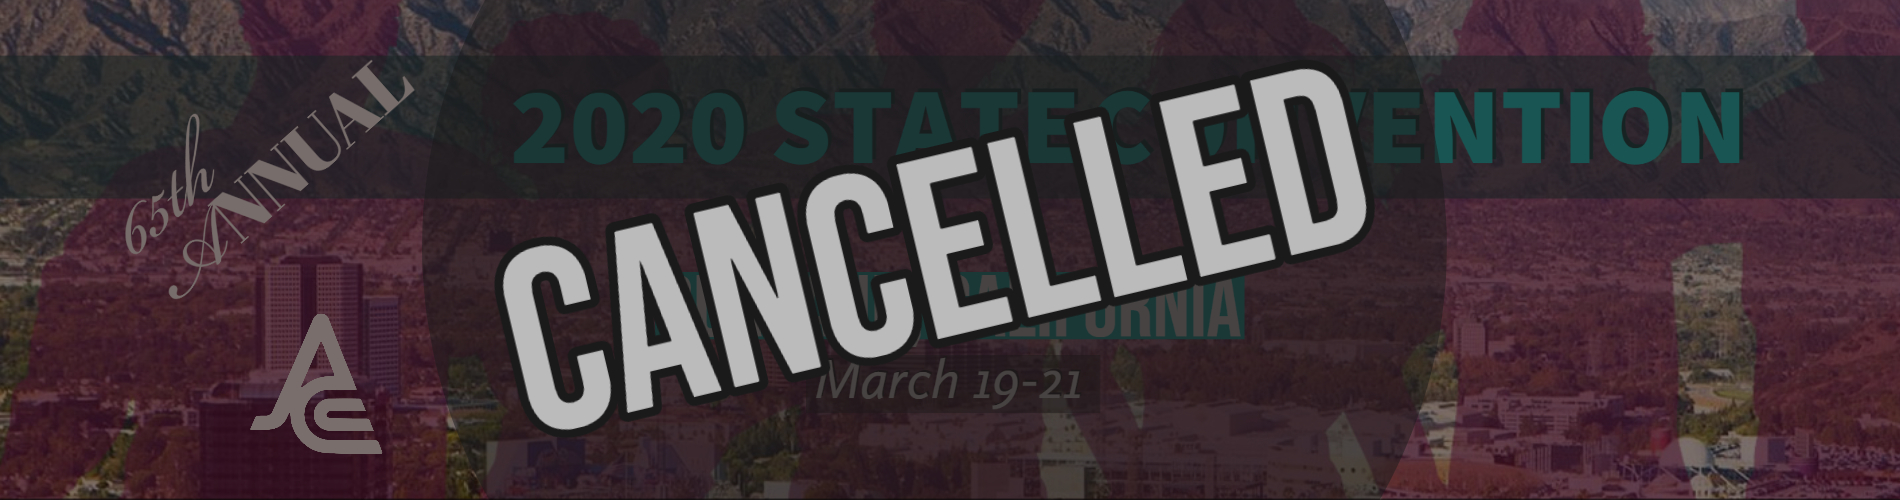 2020 JACC State Convention cancelled